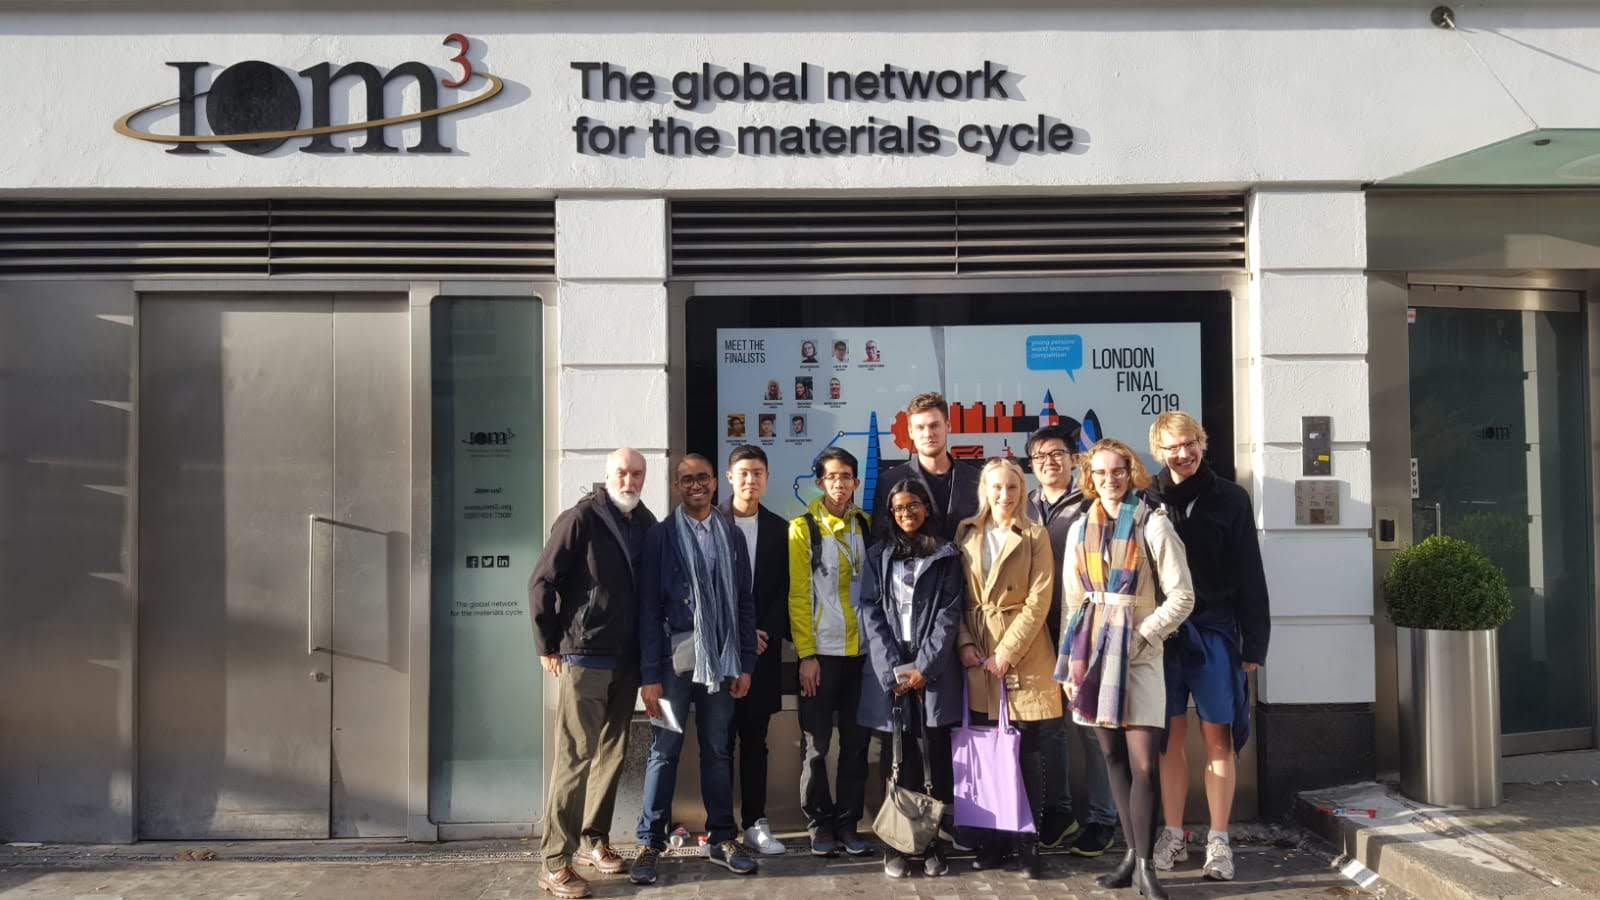 2019 YPWLC finalists and Dr. Phil Bischler, Chair of Judging Panel and IOM3 Board Member, outside the Institute of Materials, Minerals and Mining (IOM3) in London UK.